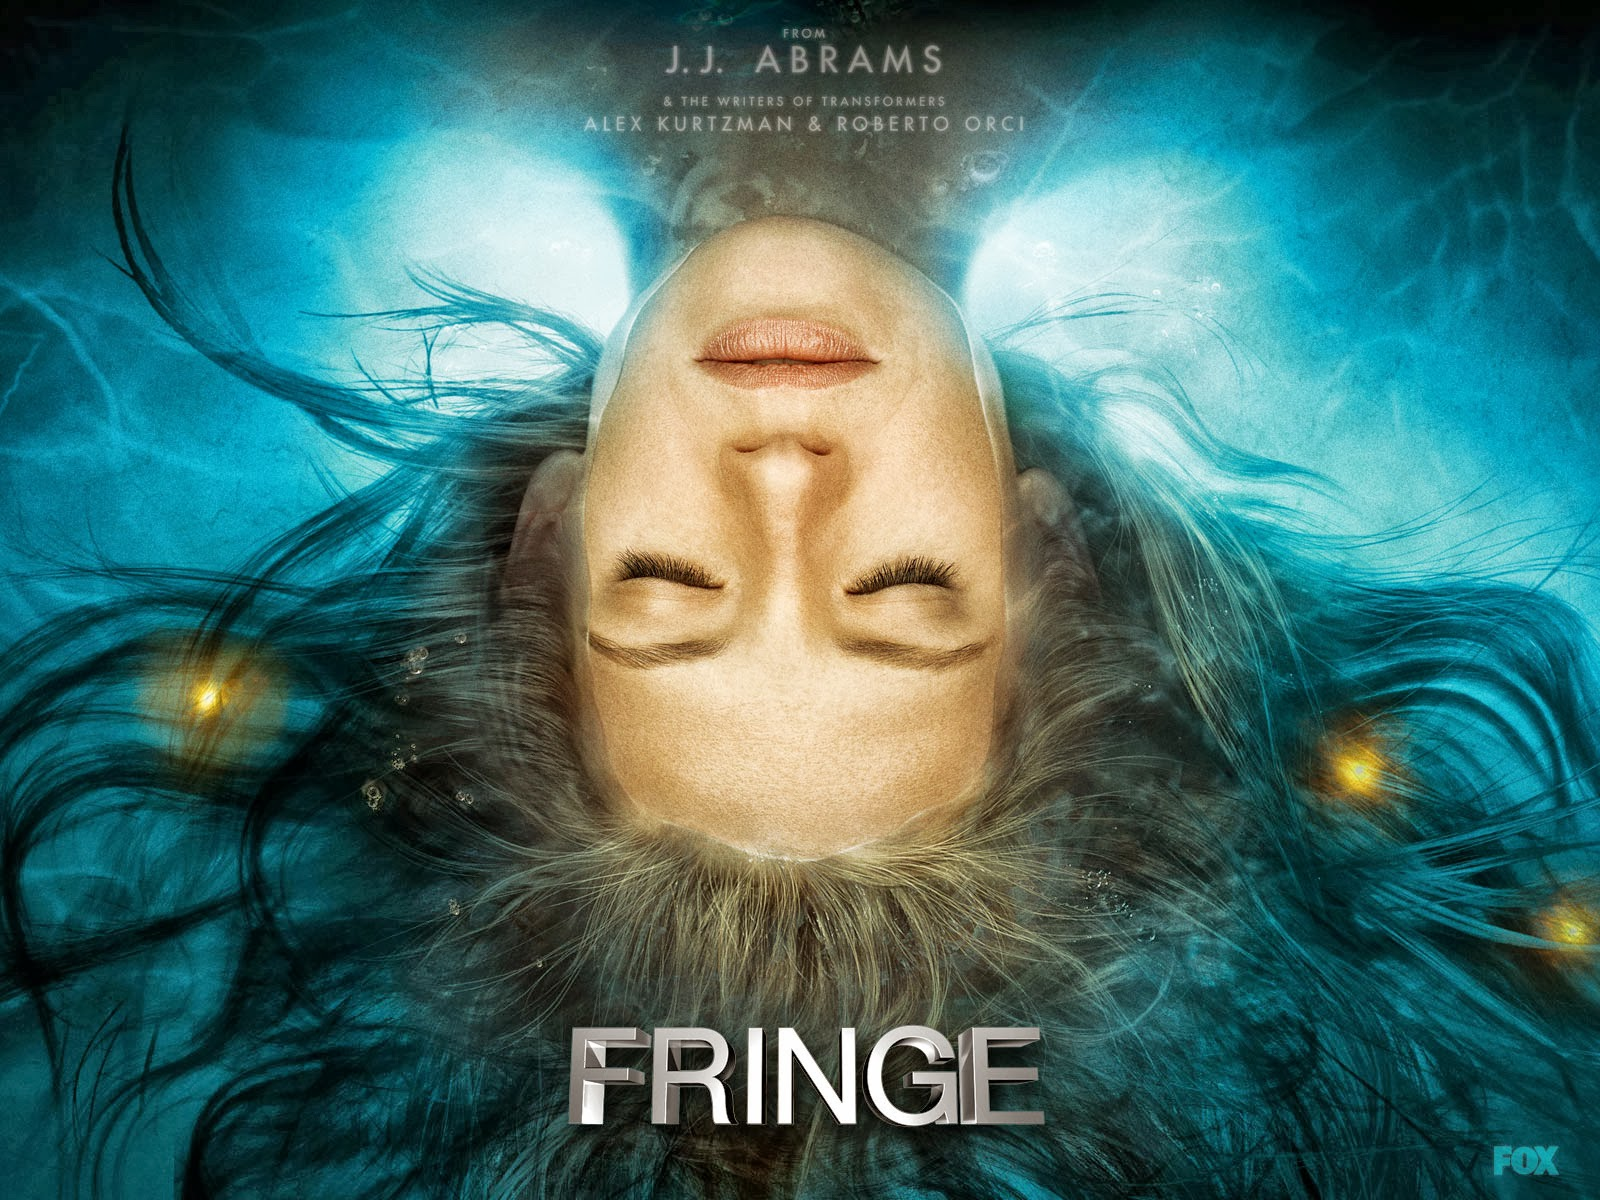 2013 is fringe coming back in 2011The SpoilerTV Favourite TV Series Competition 2013   Round 3 Qtgl8vtA